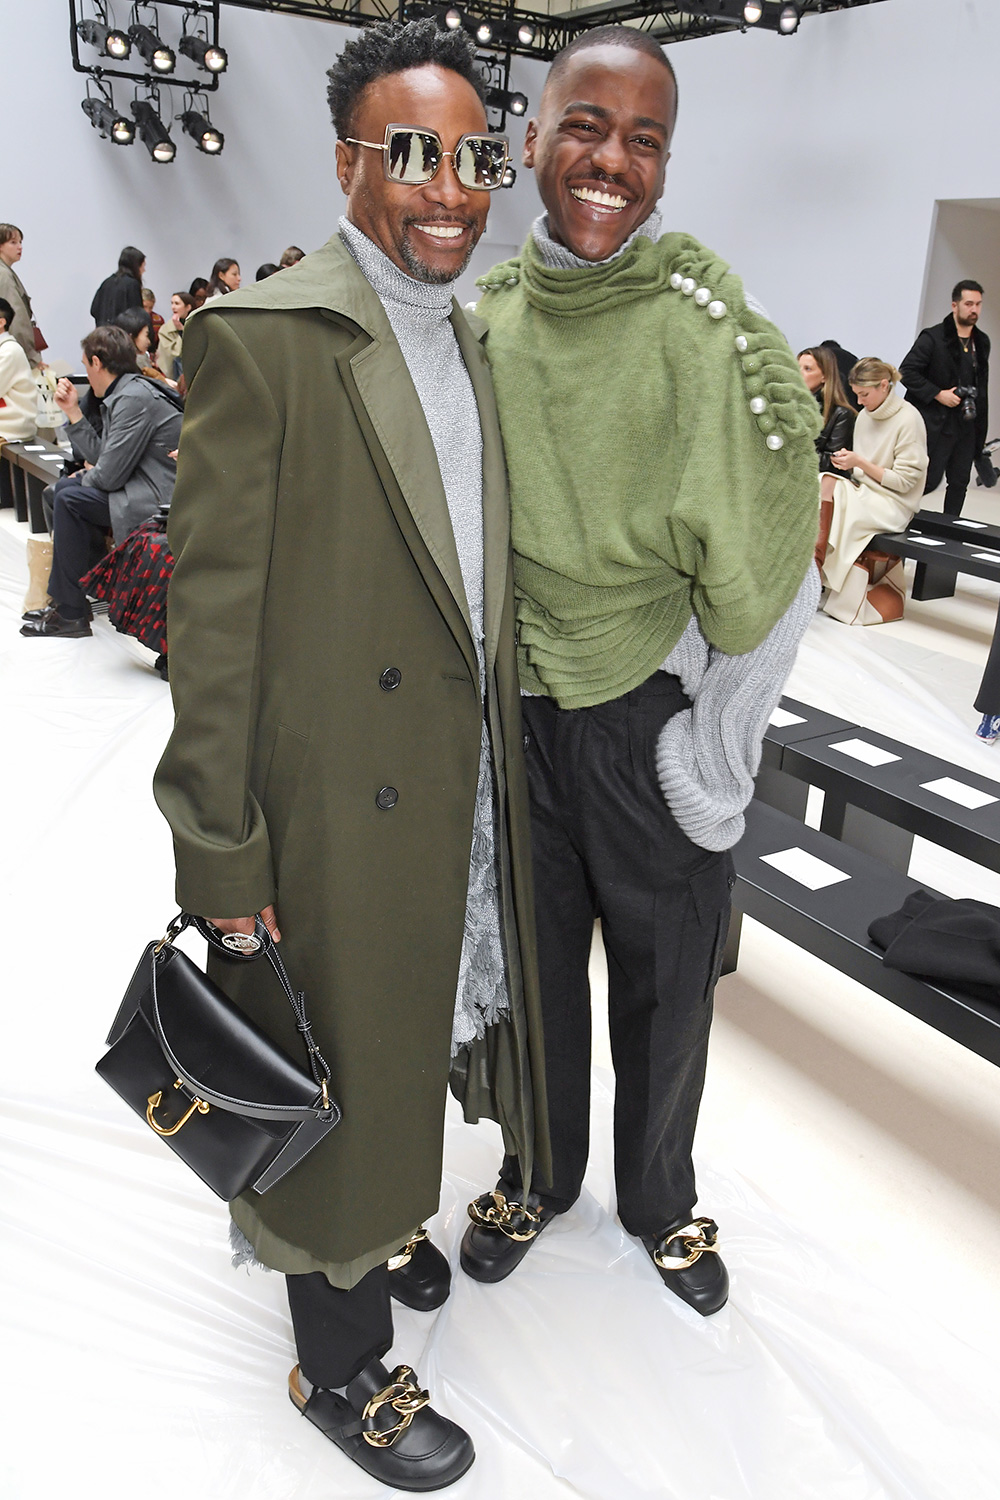 Billy Porter and Ncuti Gatwa attend the JW Anderson show during London Fashion Week February 2020 at Yeomanry House on February 17, 2020 in London, England